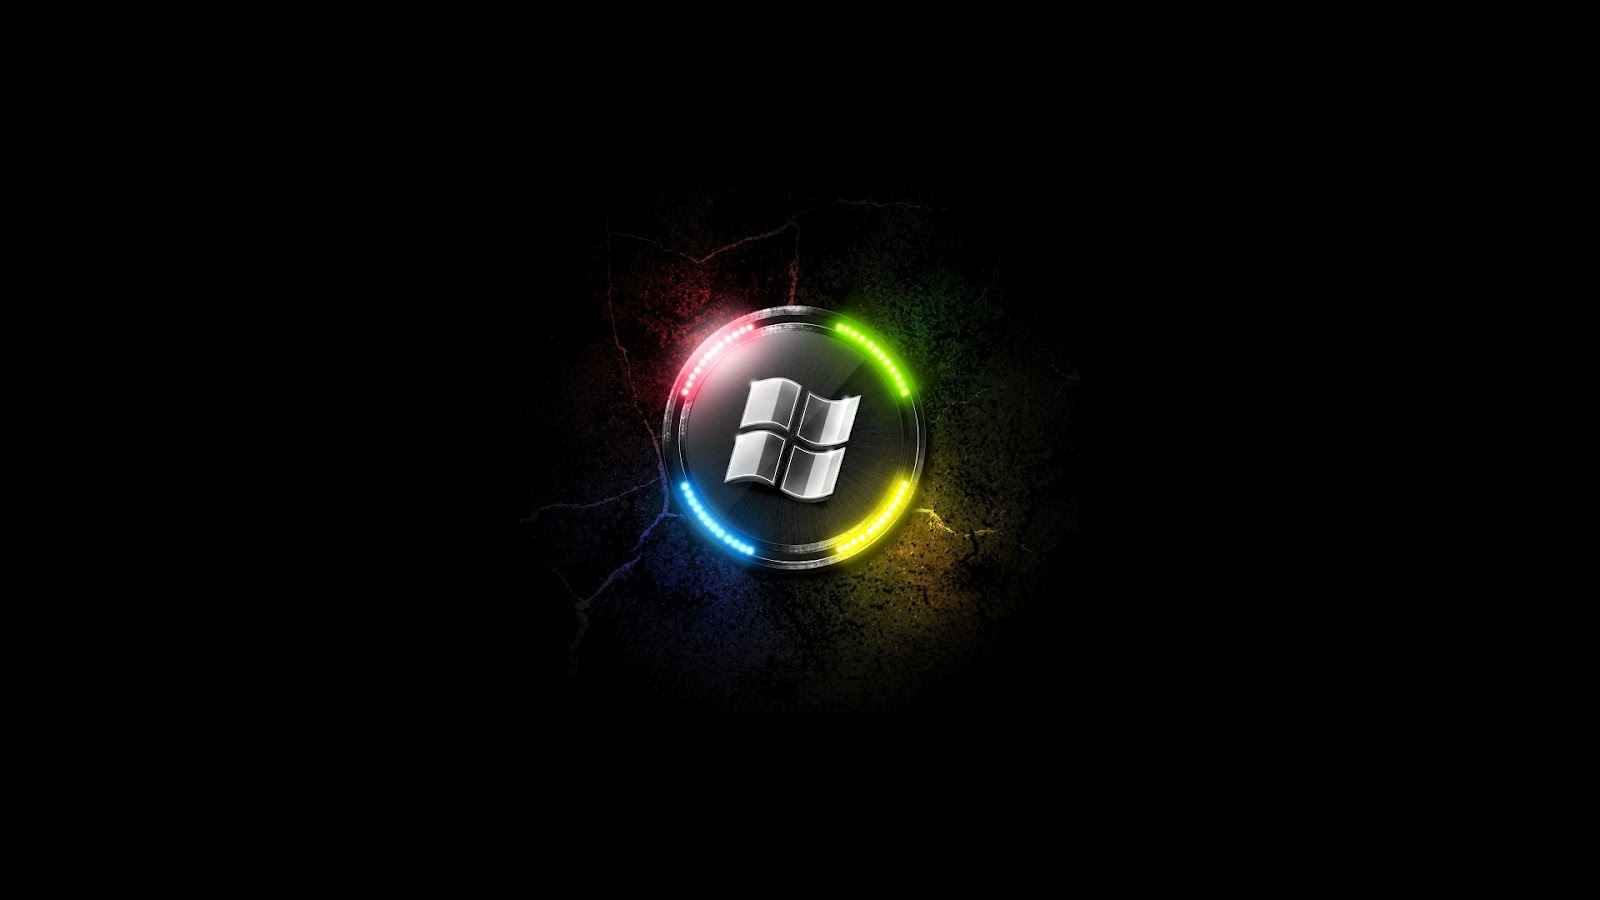 free downloads hd wallpapers: hi-tech-colors-windows-7-1080p-hd